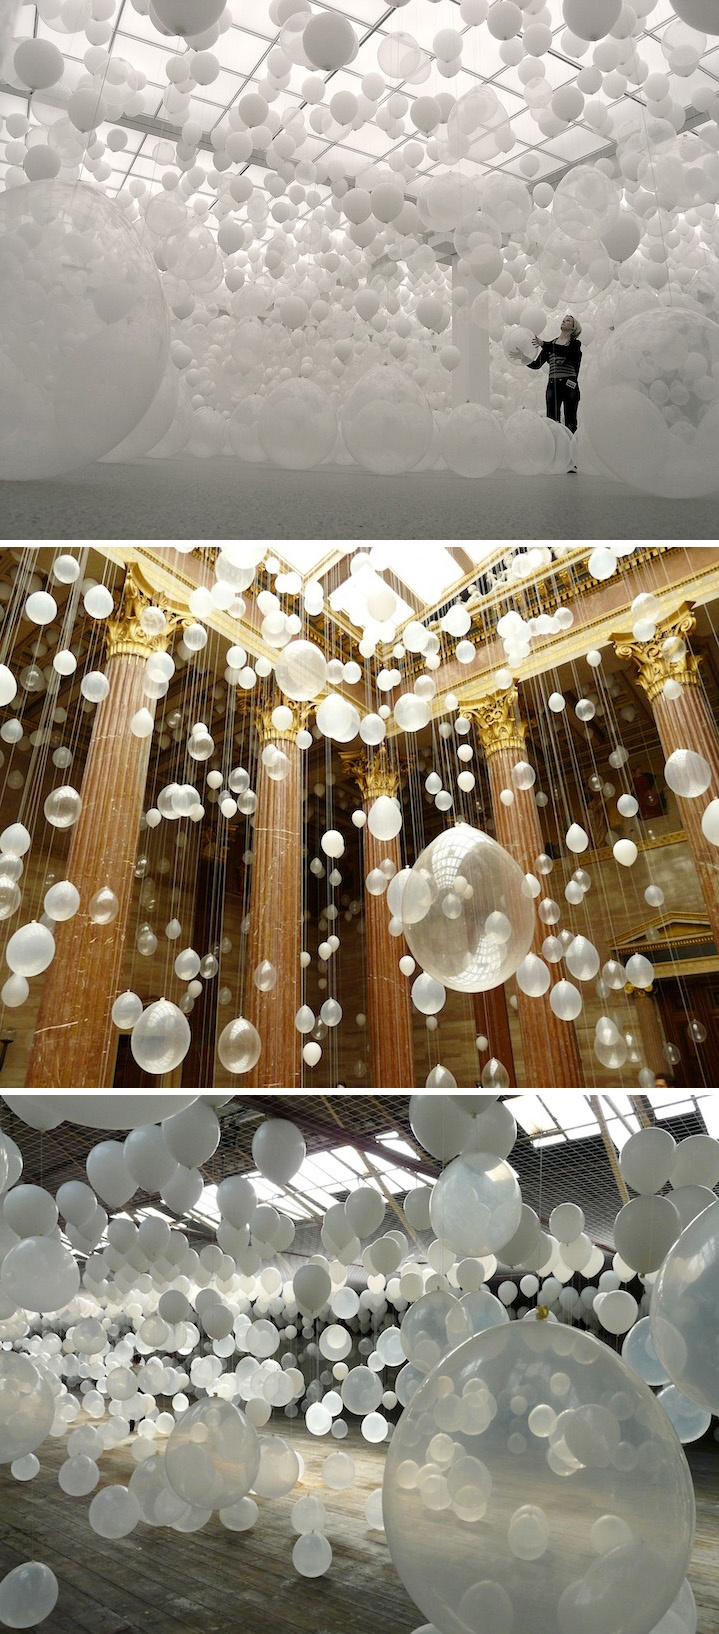 Scattered Crowd - installation featuring thousands of balloons by William Forsythe.